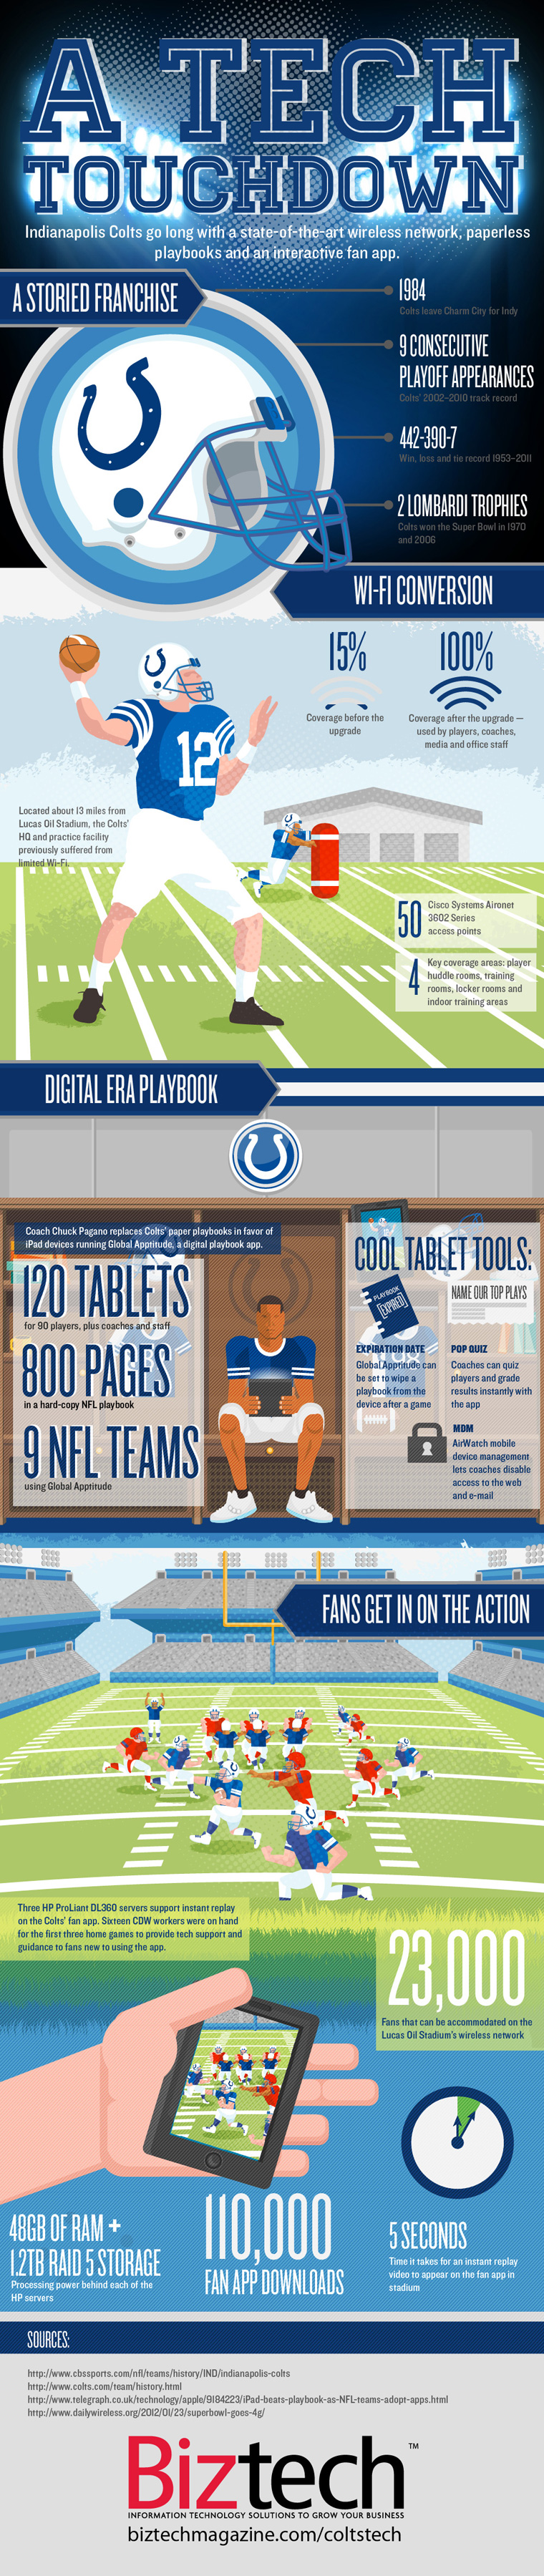 Indianapolis Colts Technology infographic